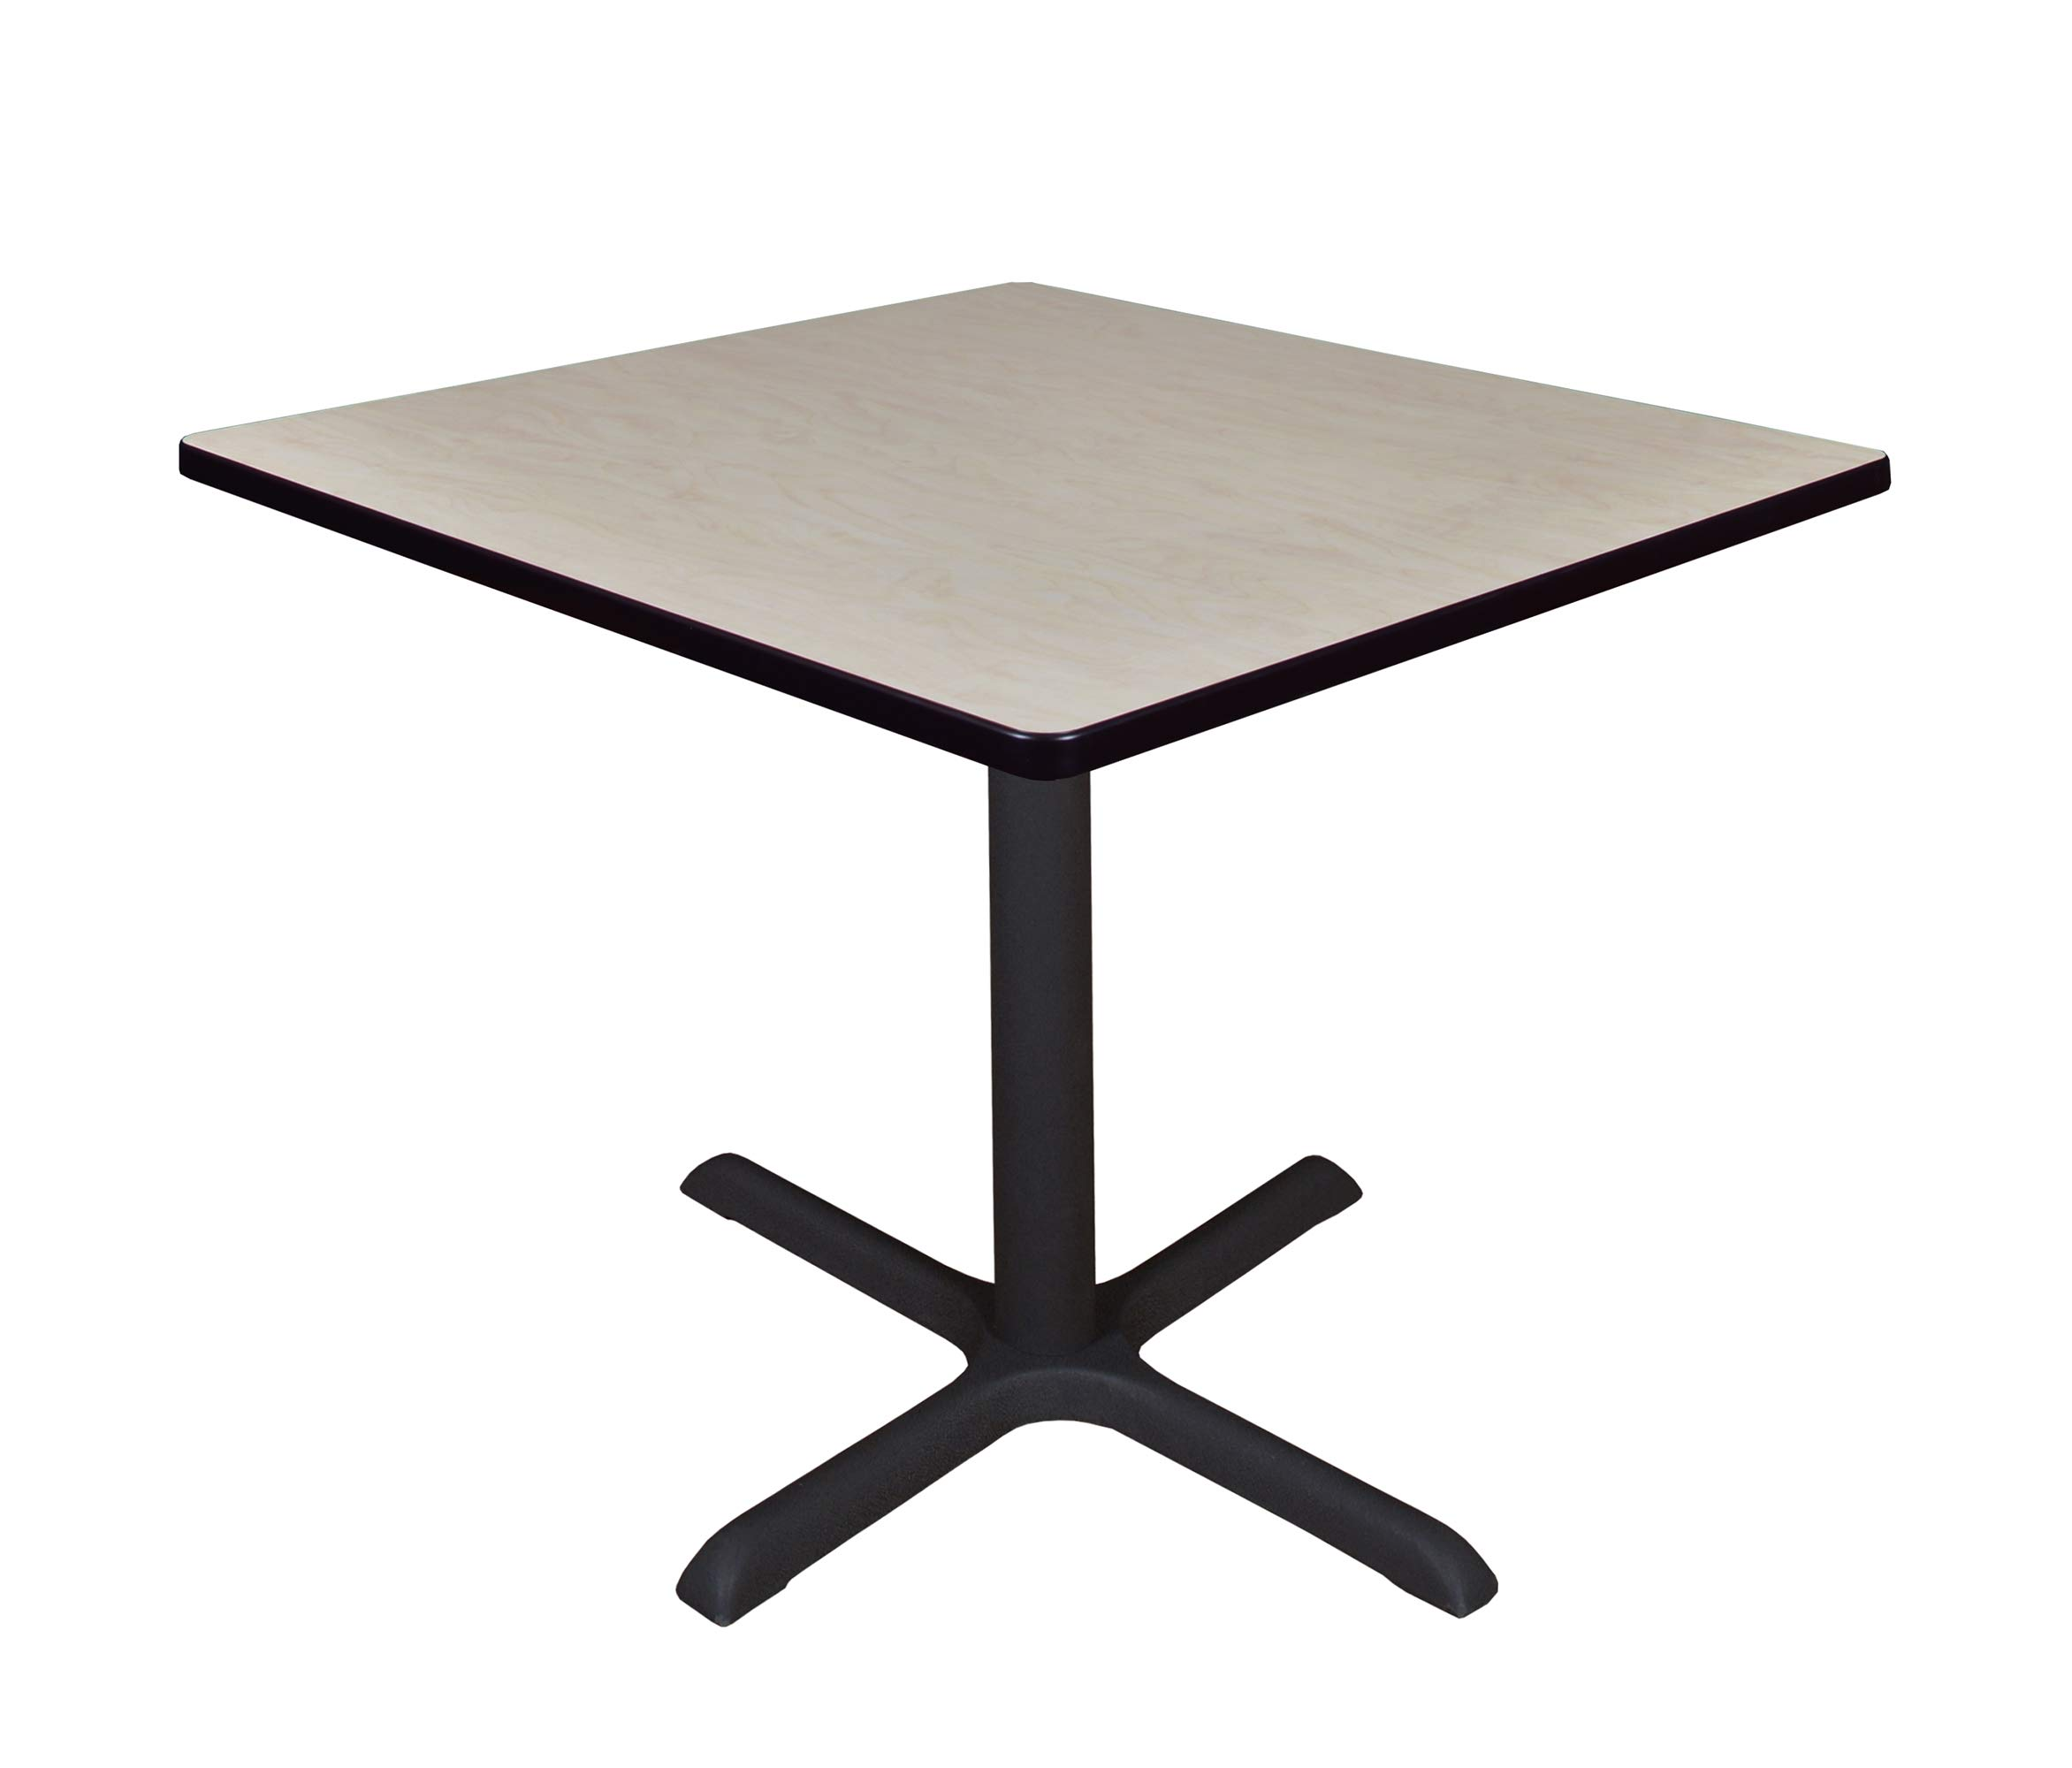 Regency A-TB4242LM Cali Square Breakroom Table, 42'', Light Maple by Regency